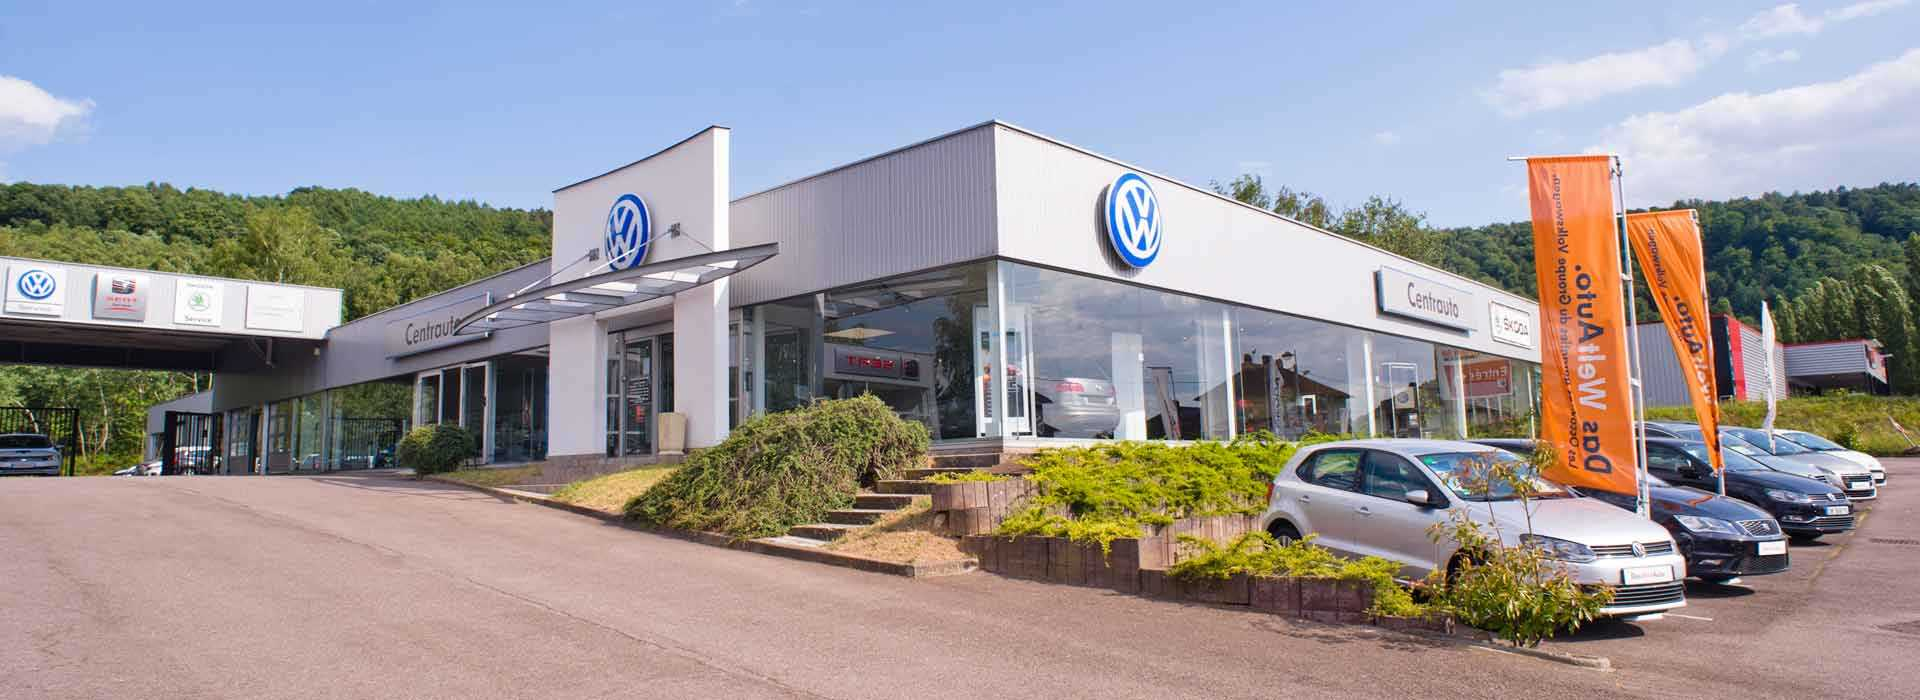 volkswagen forbach concessionnaire garage moselle 57